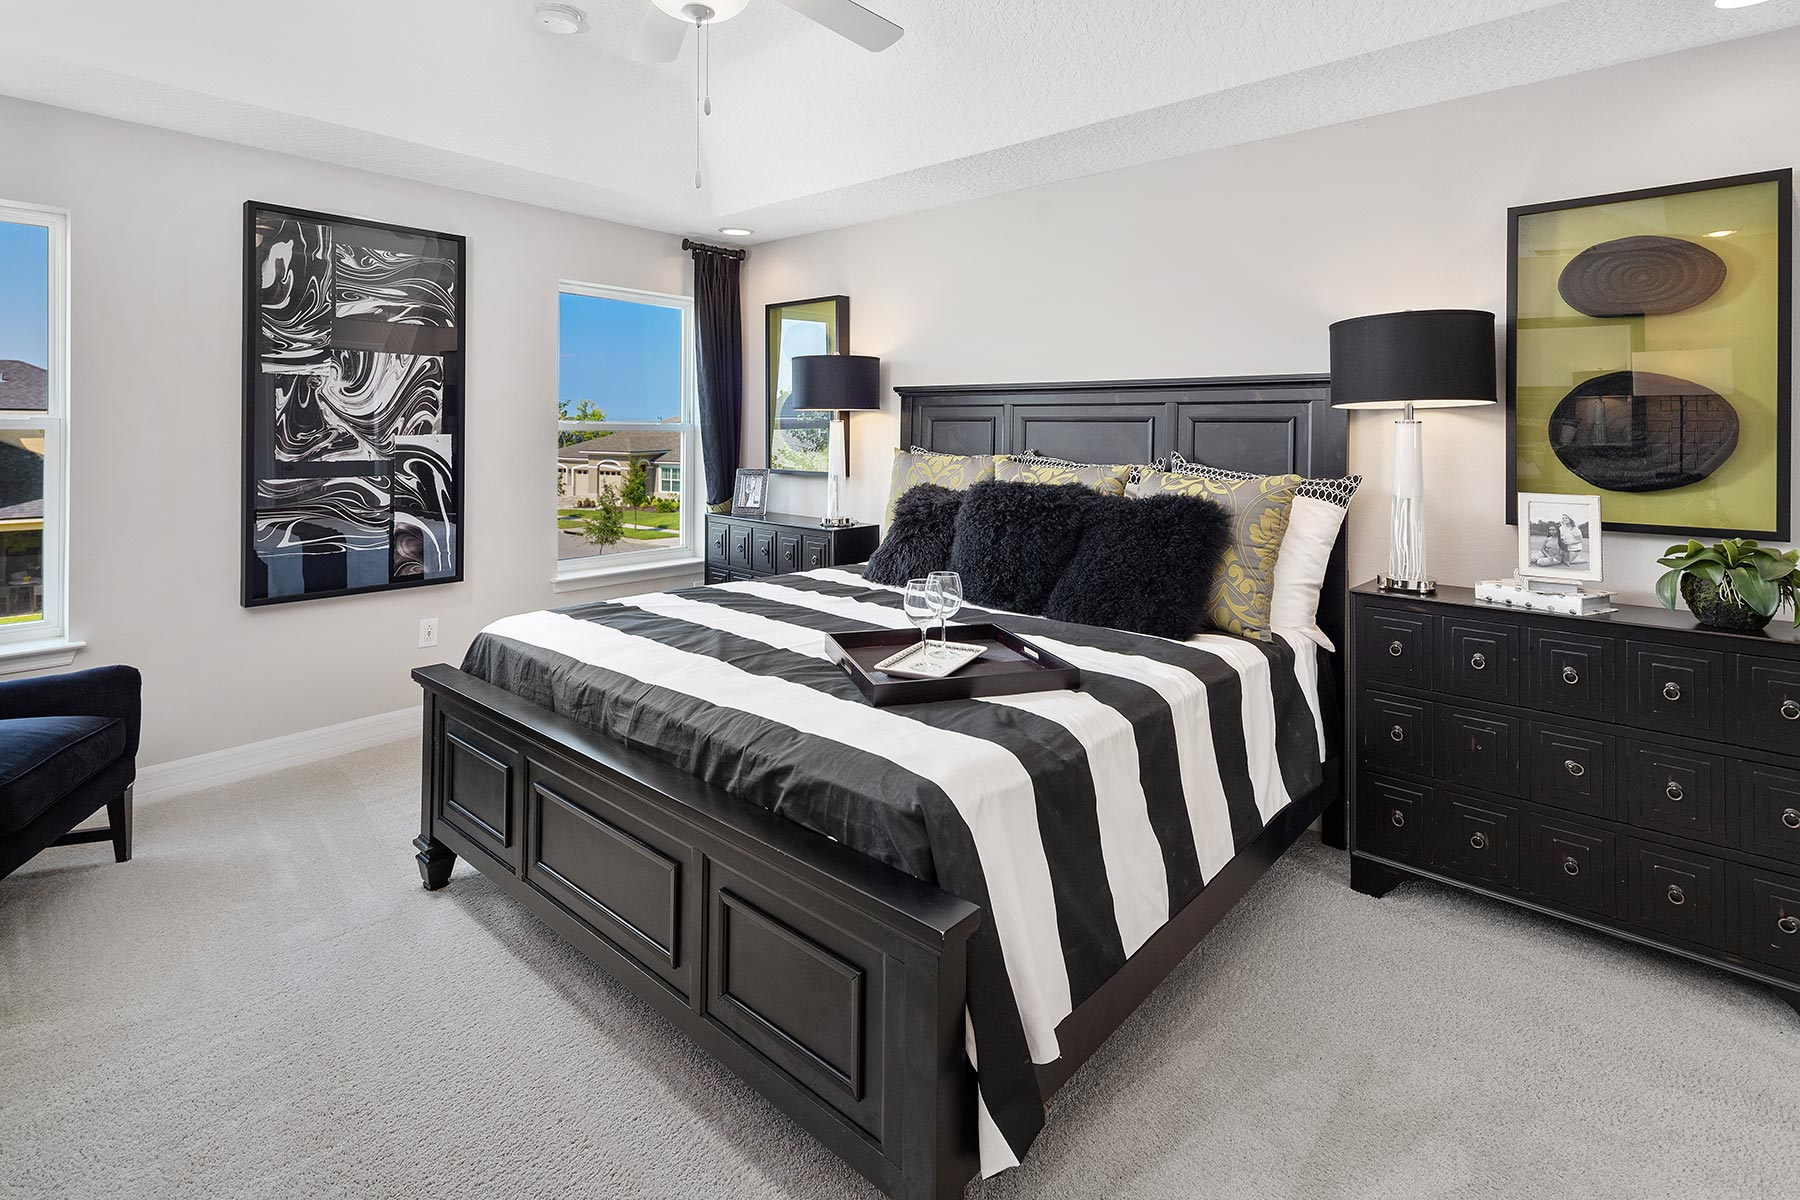 Campbell Plan Bedroom at Tohoqua in Kissimmee Florida by Mattamy Homes